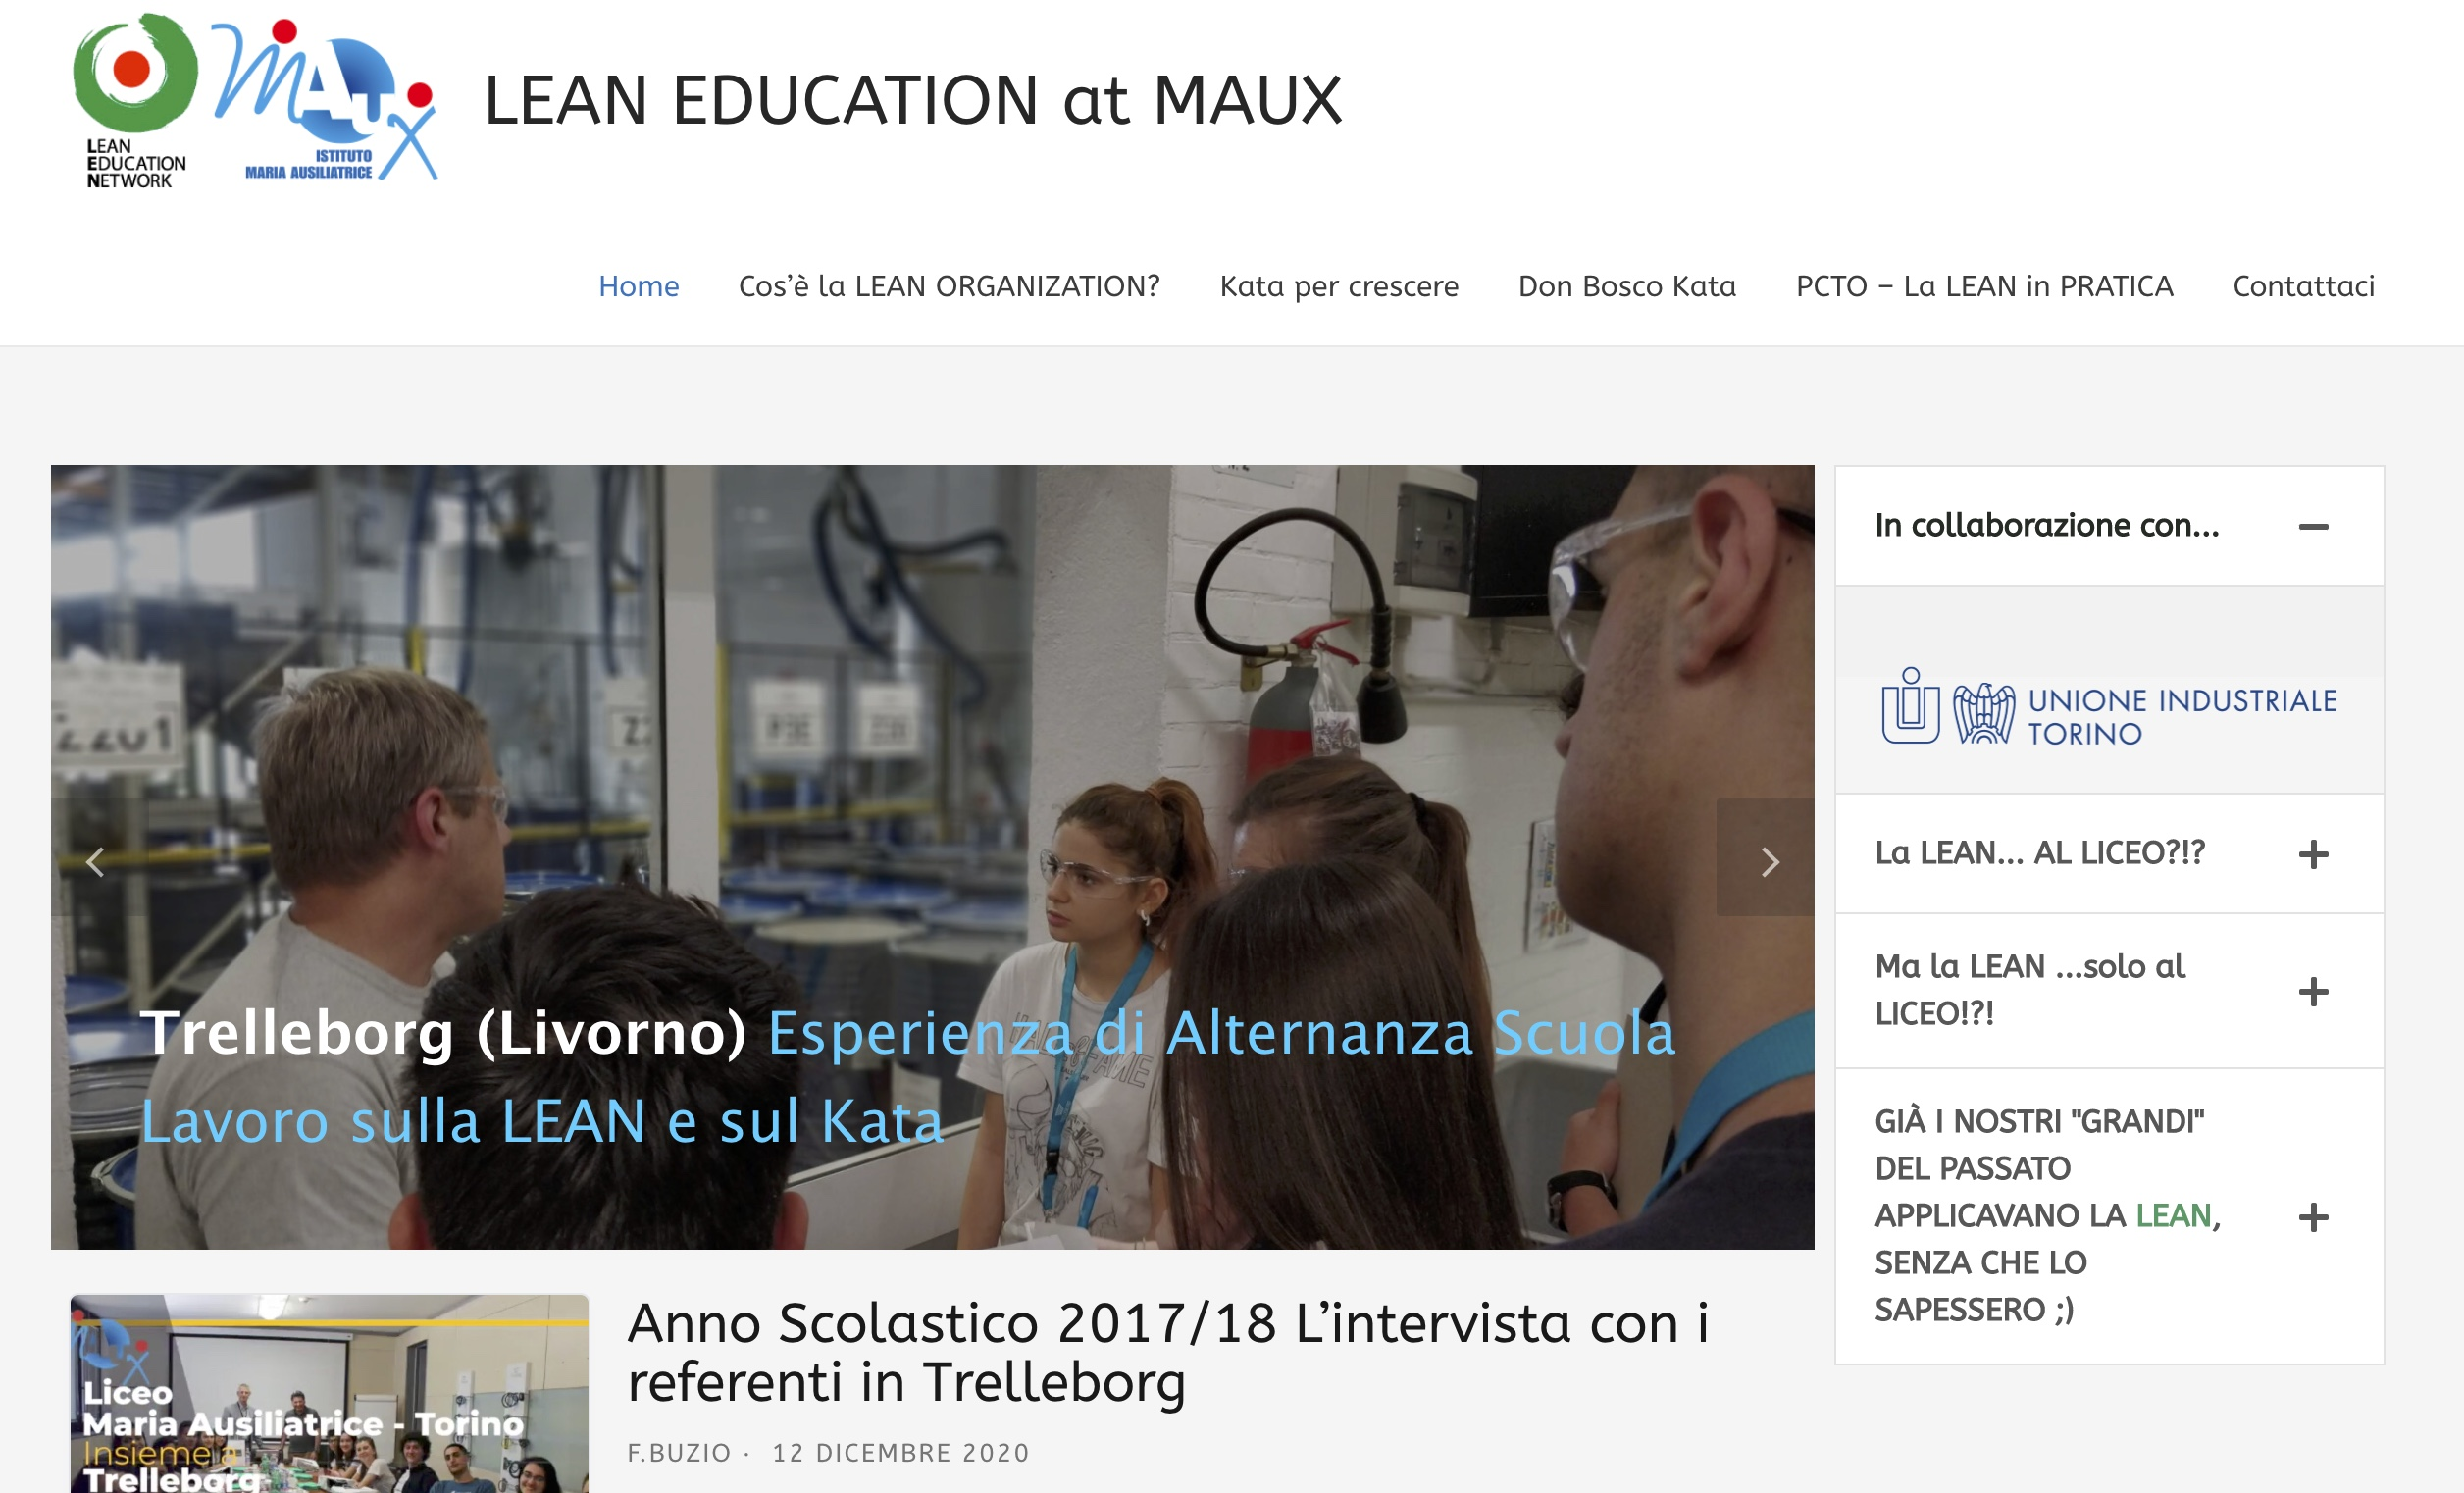 LEAN at MAUX